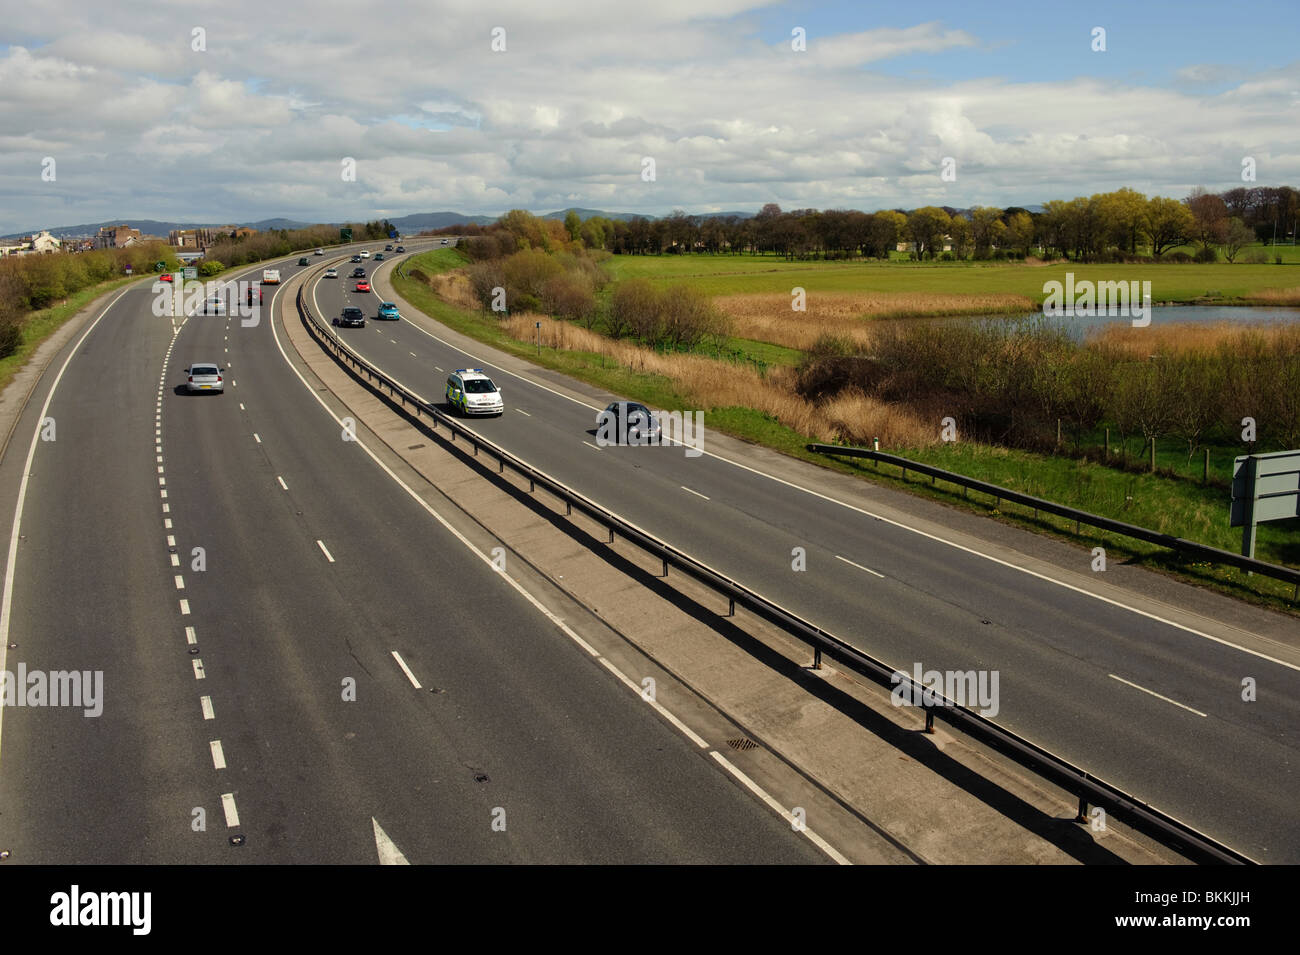 Traffic on the A55 expressway dual carriageway road near Rhyl, north wales UK - Stock Image